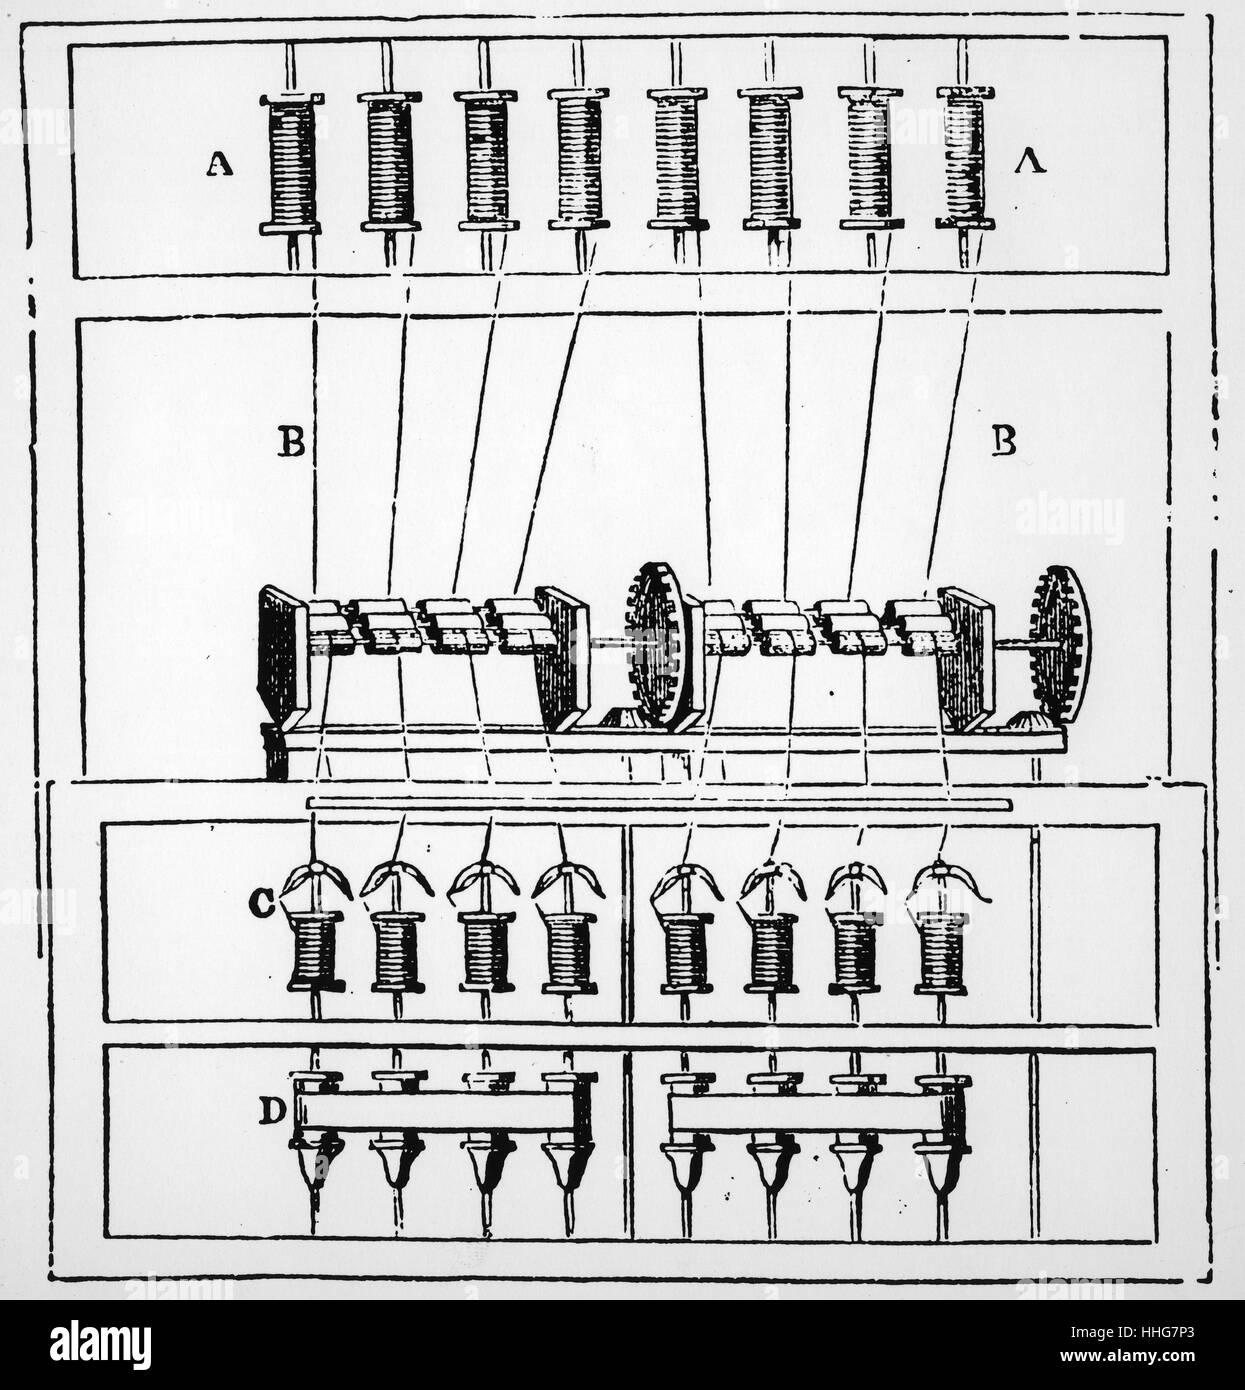 hight resolution of diagram of arkwright s water frame 1878